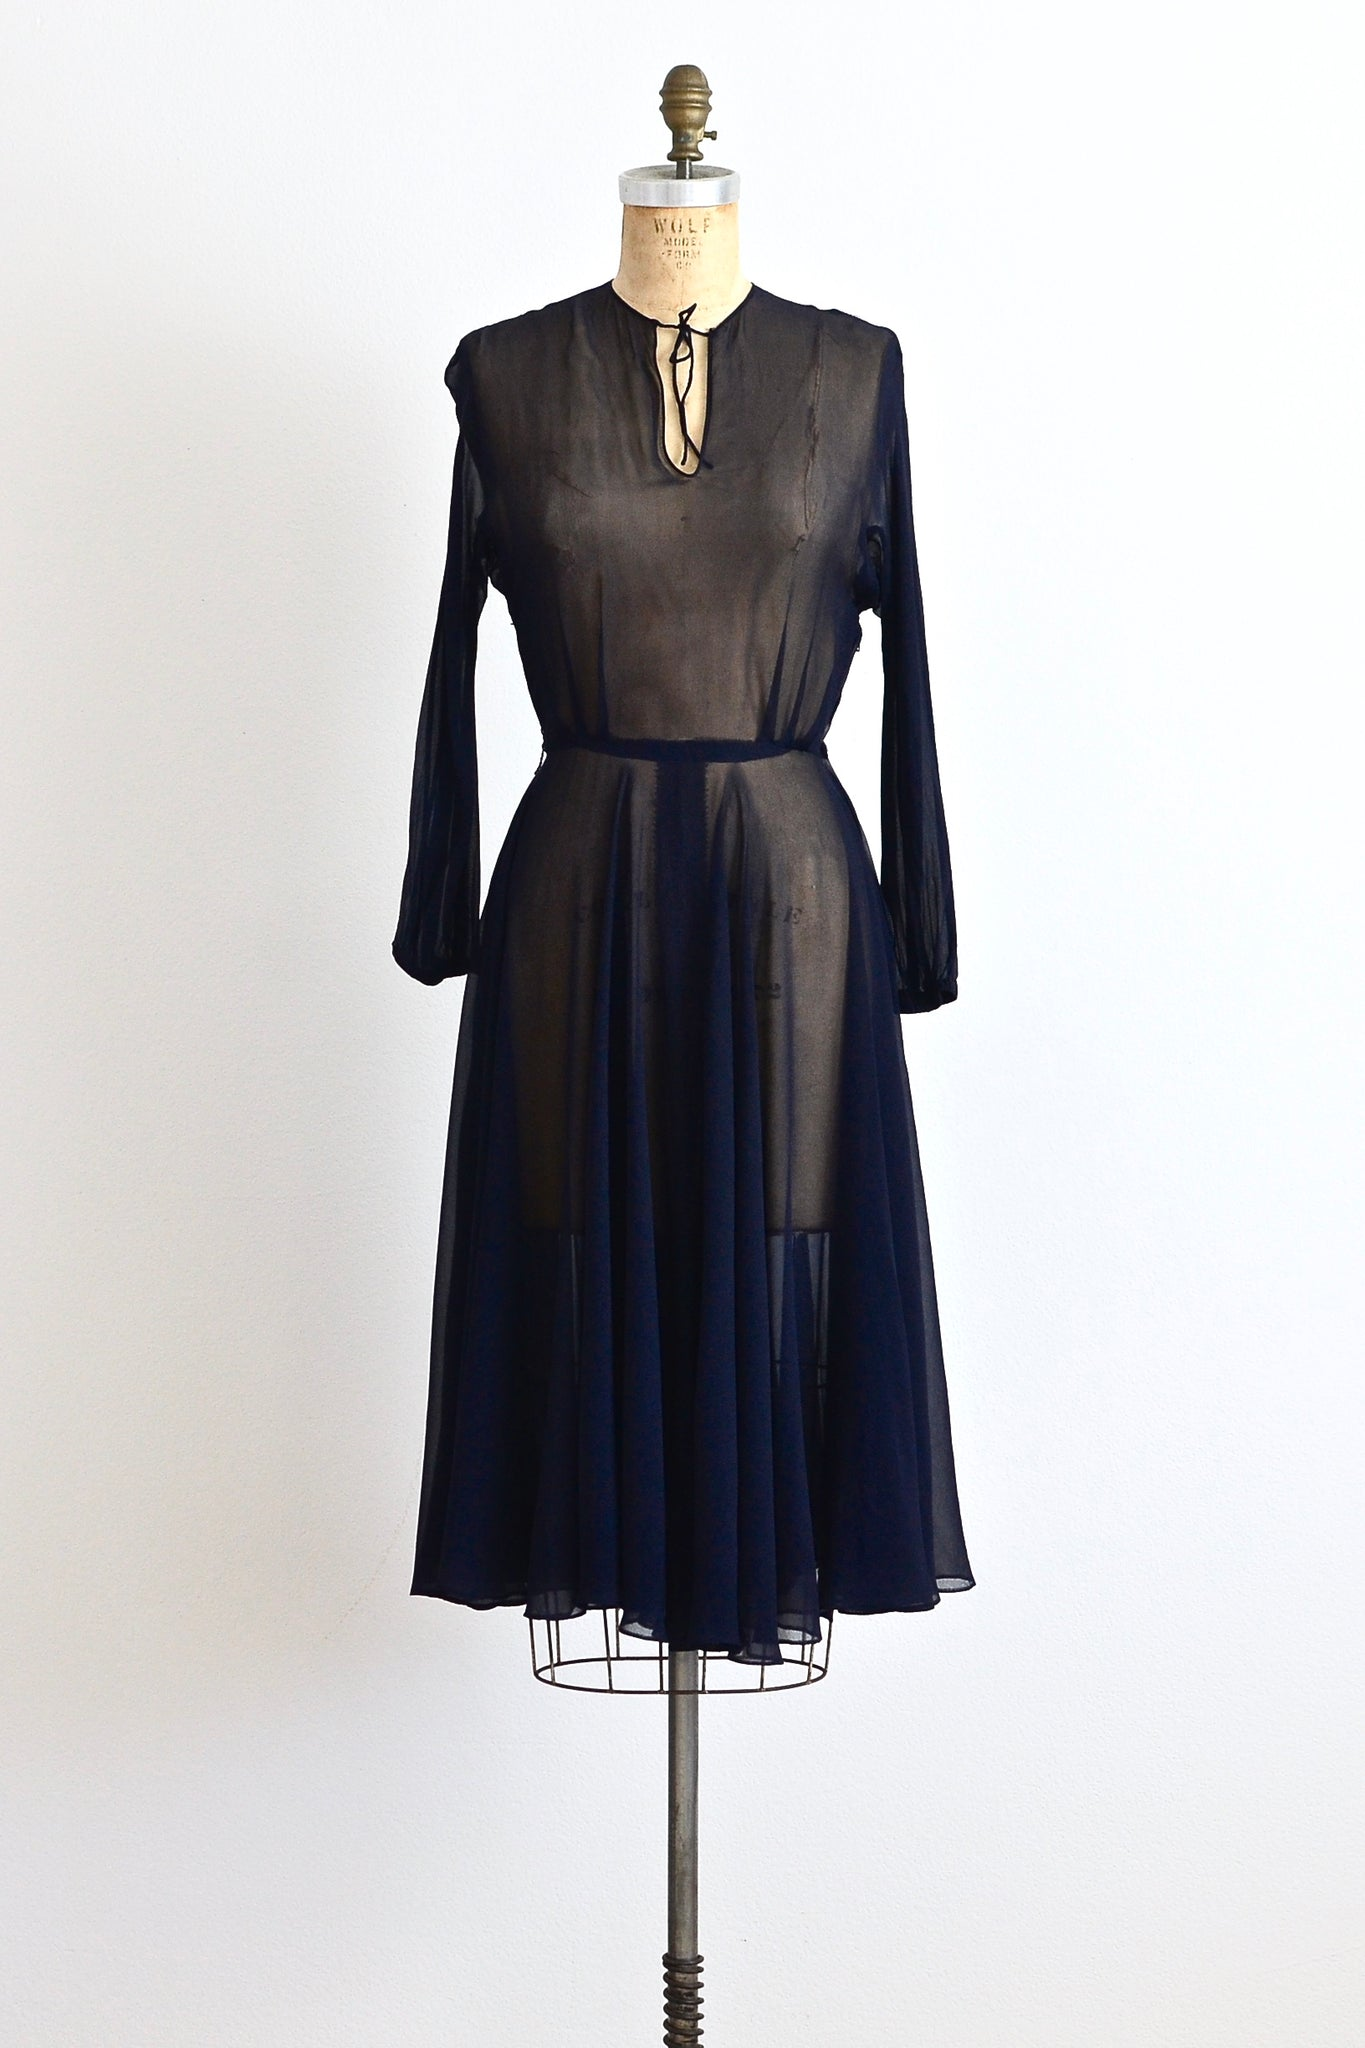 New! - 1940s Navy Blue Chiffon Dress - Pickled Vintage